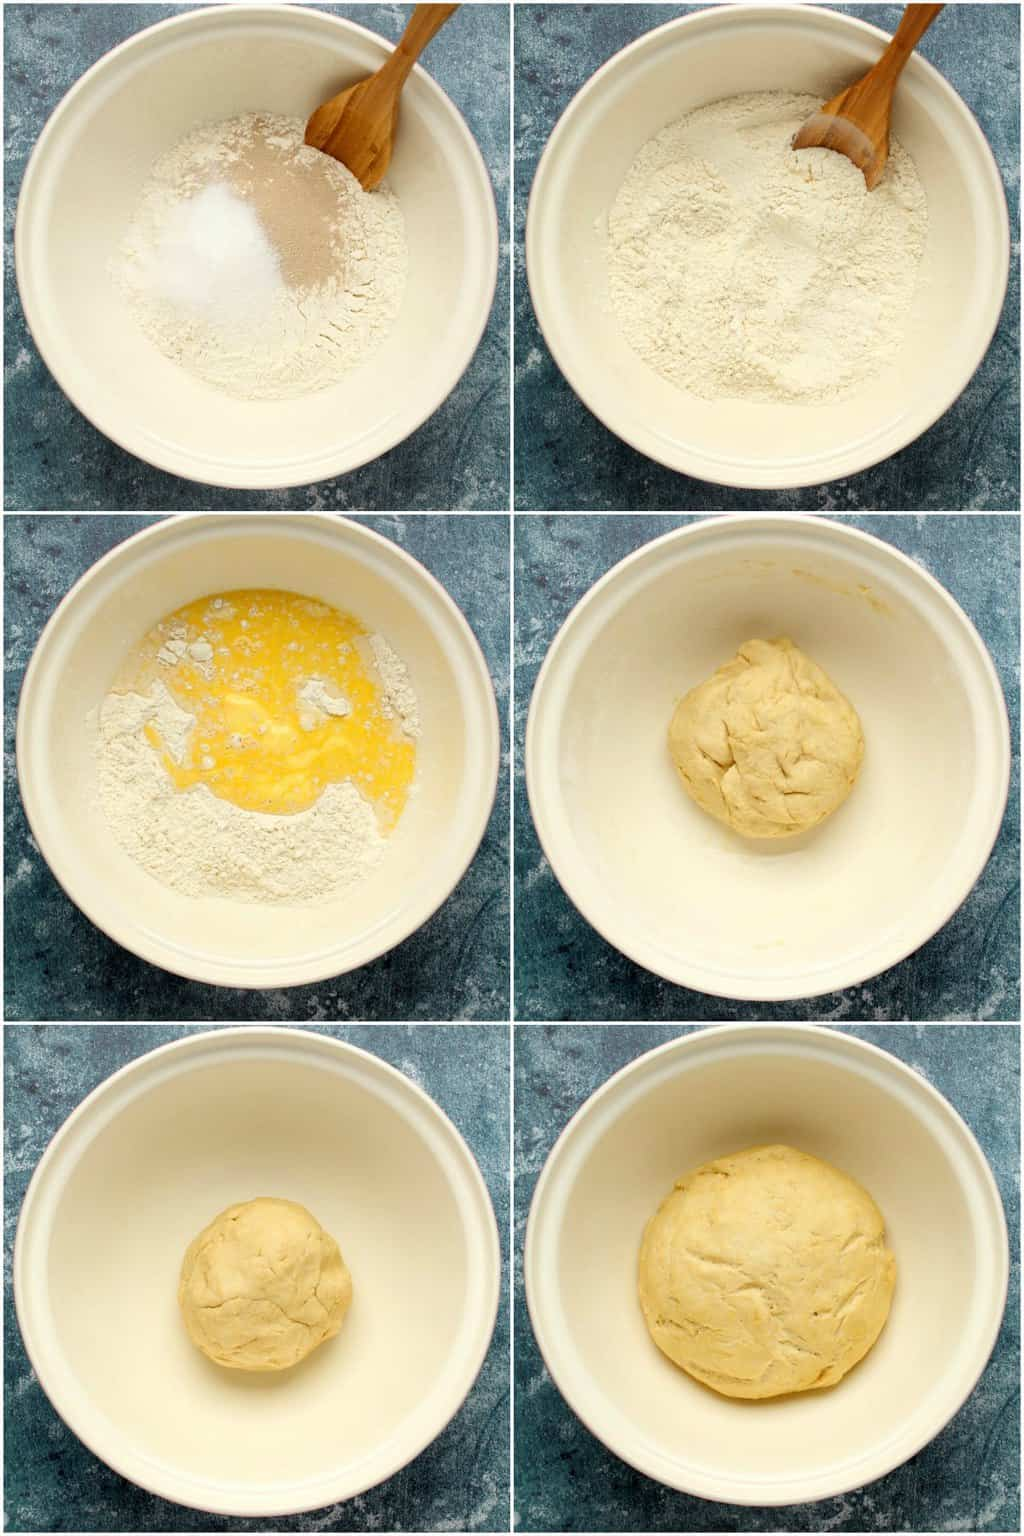 Step by step process photo collage of making dough for vegan cinnamon rolls.